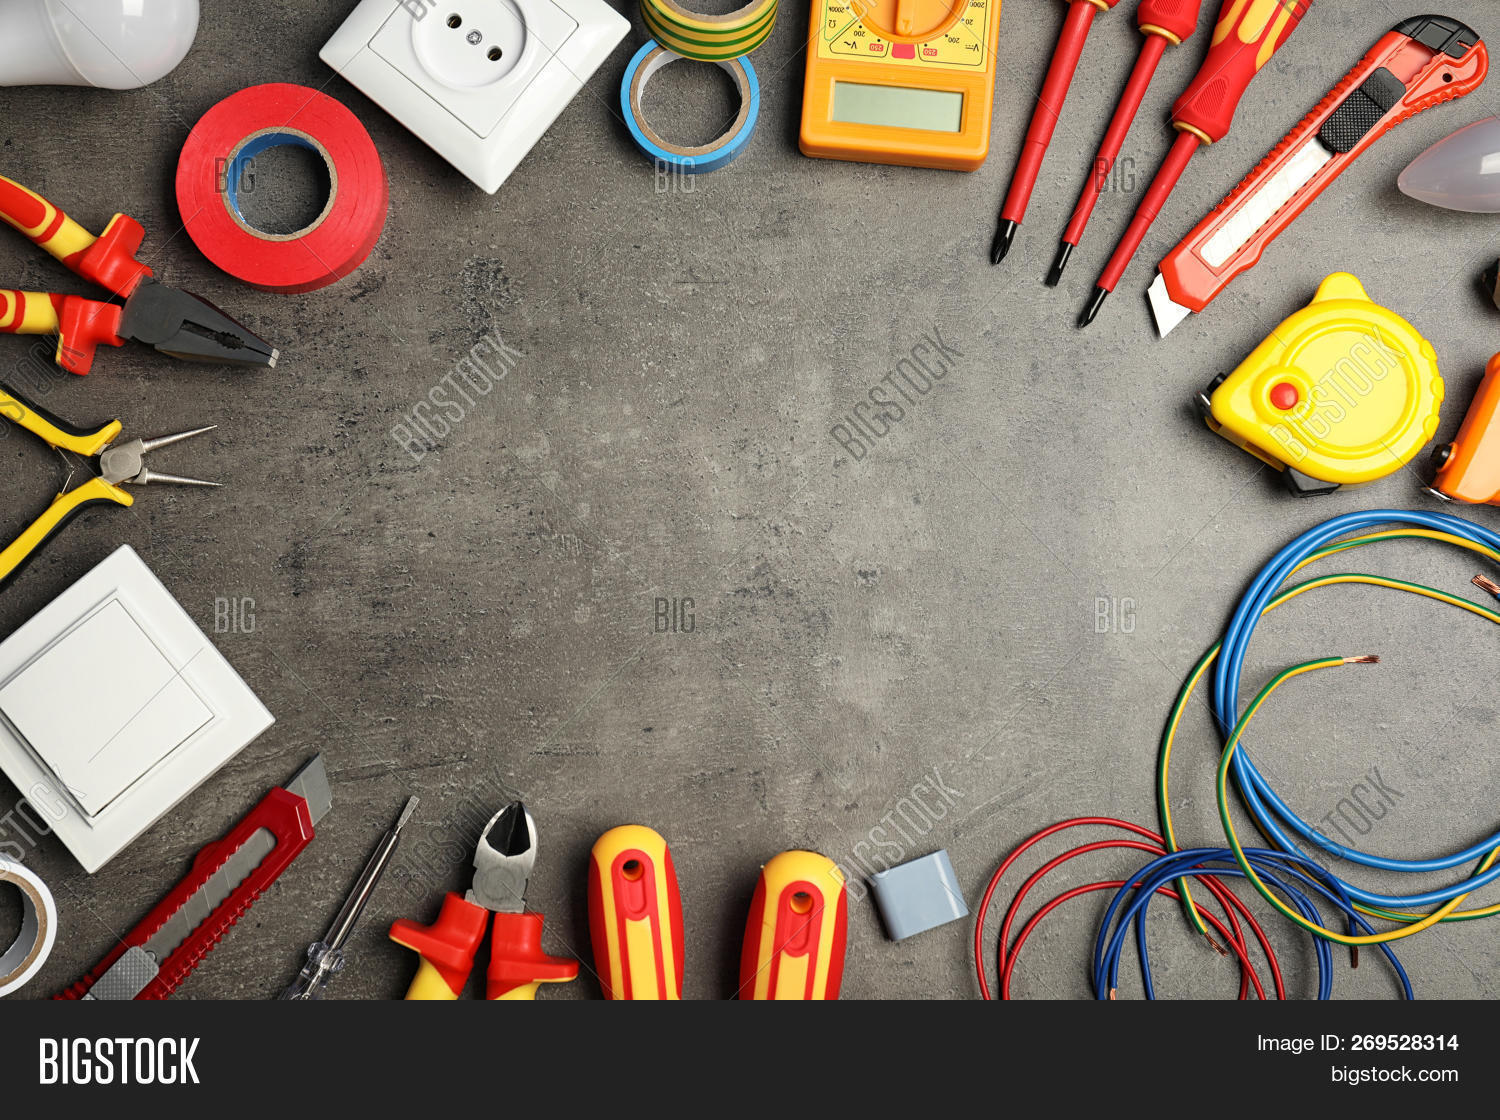 Flat Lay Composition Image Photo Free Trial Bigstock